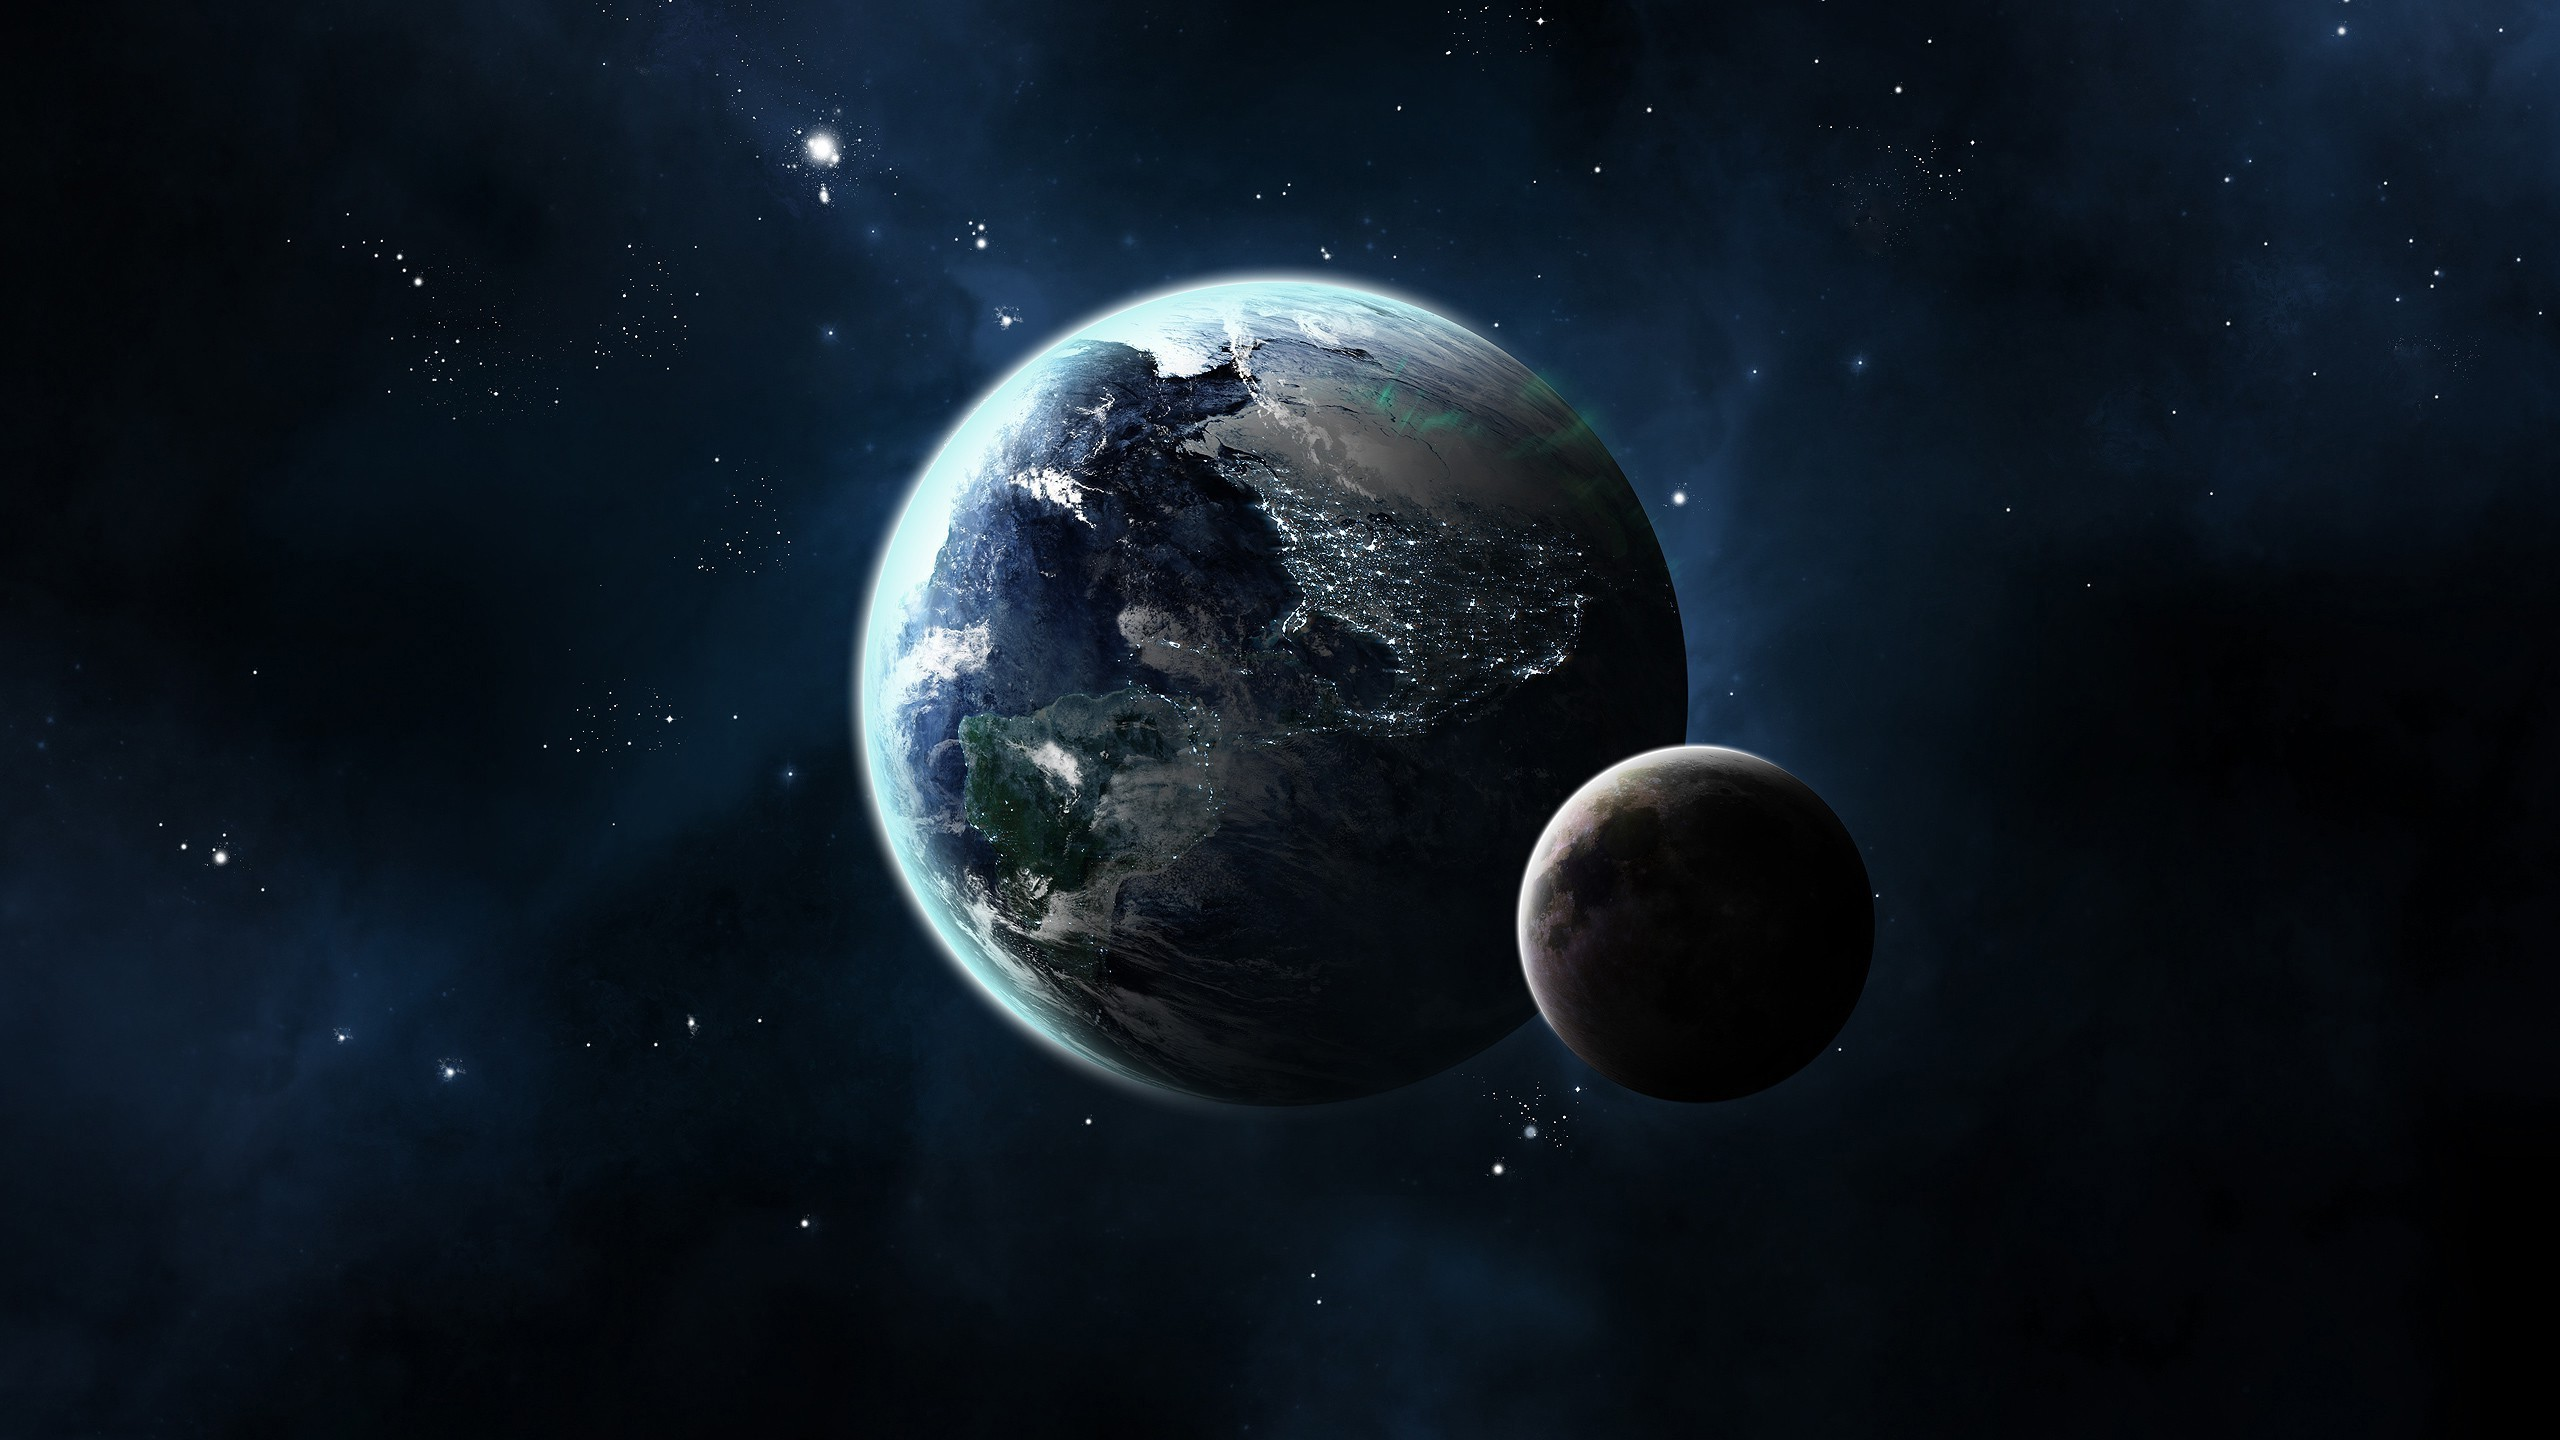 2560x1440 earth and moon wallpaper #553643